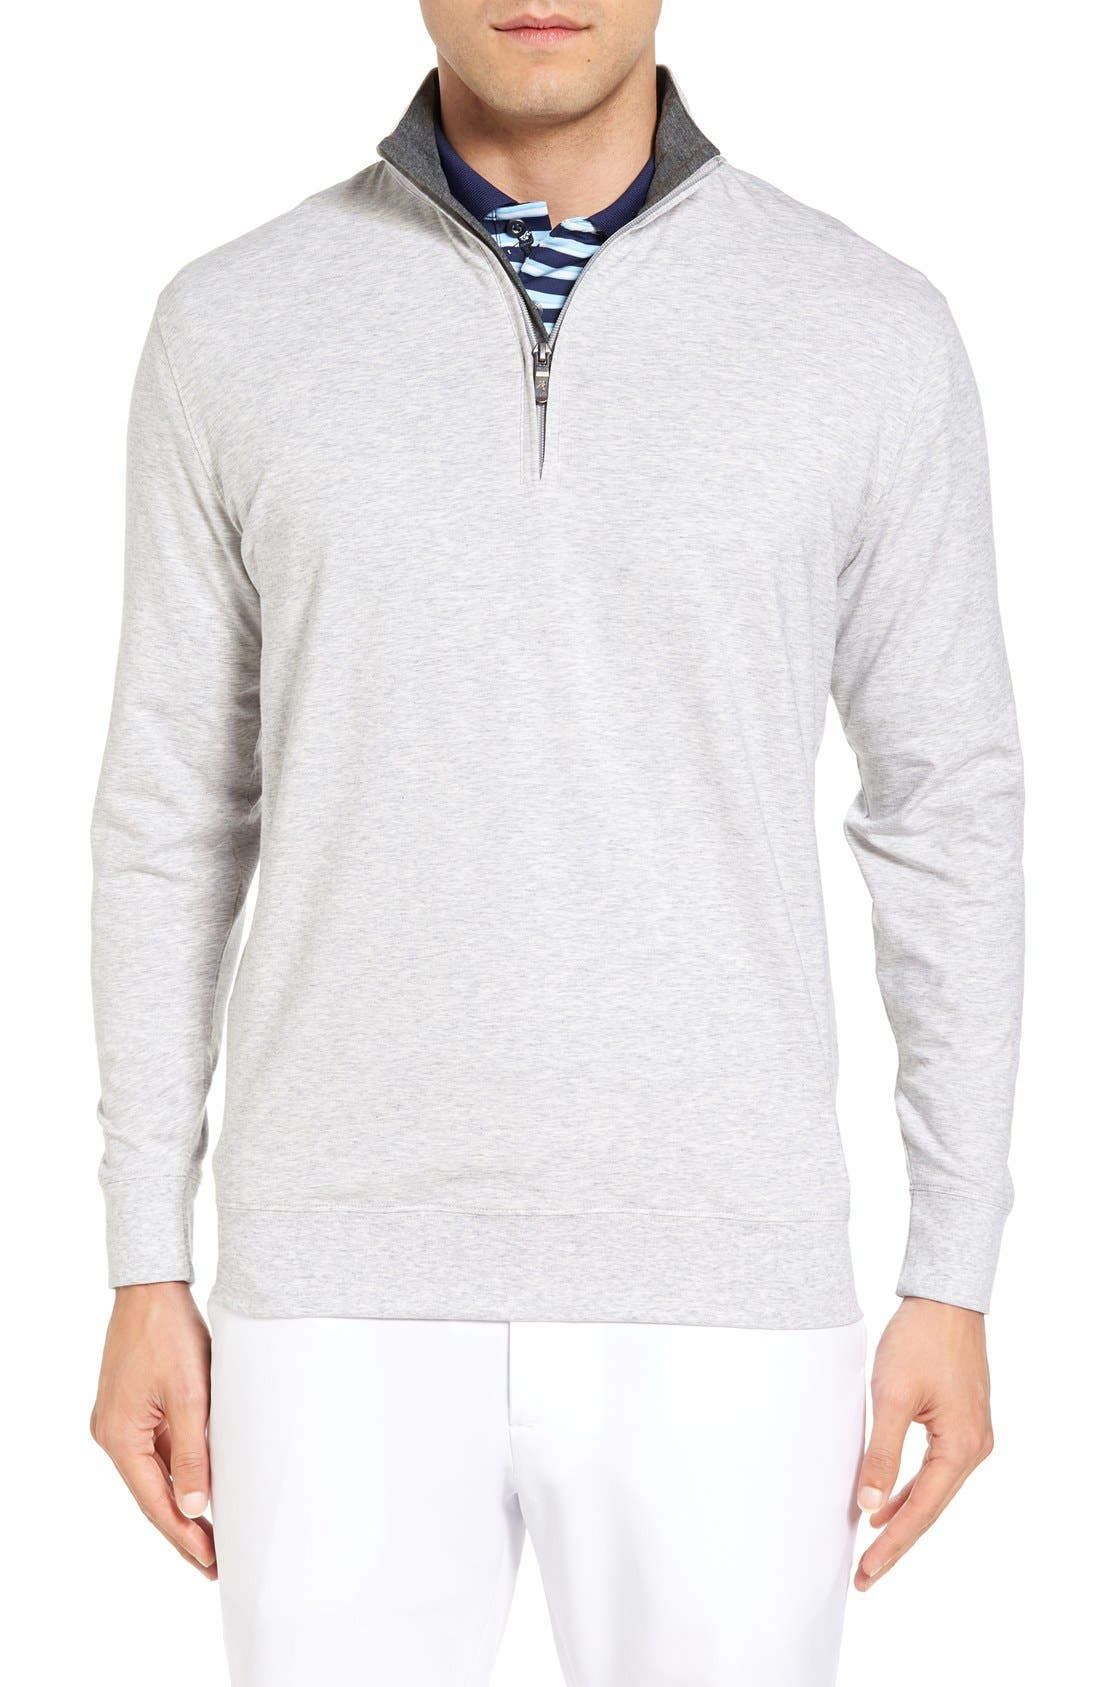 Alternate Image 1 Selected - Bobby Jones PTO Liquid Stretch Quarter Zip Pullover